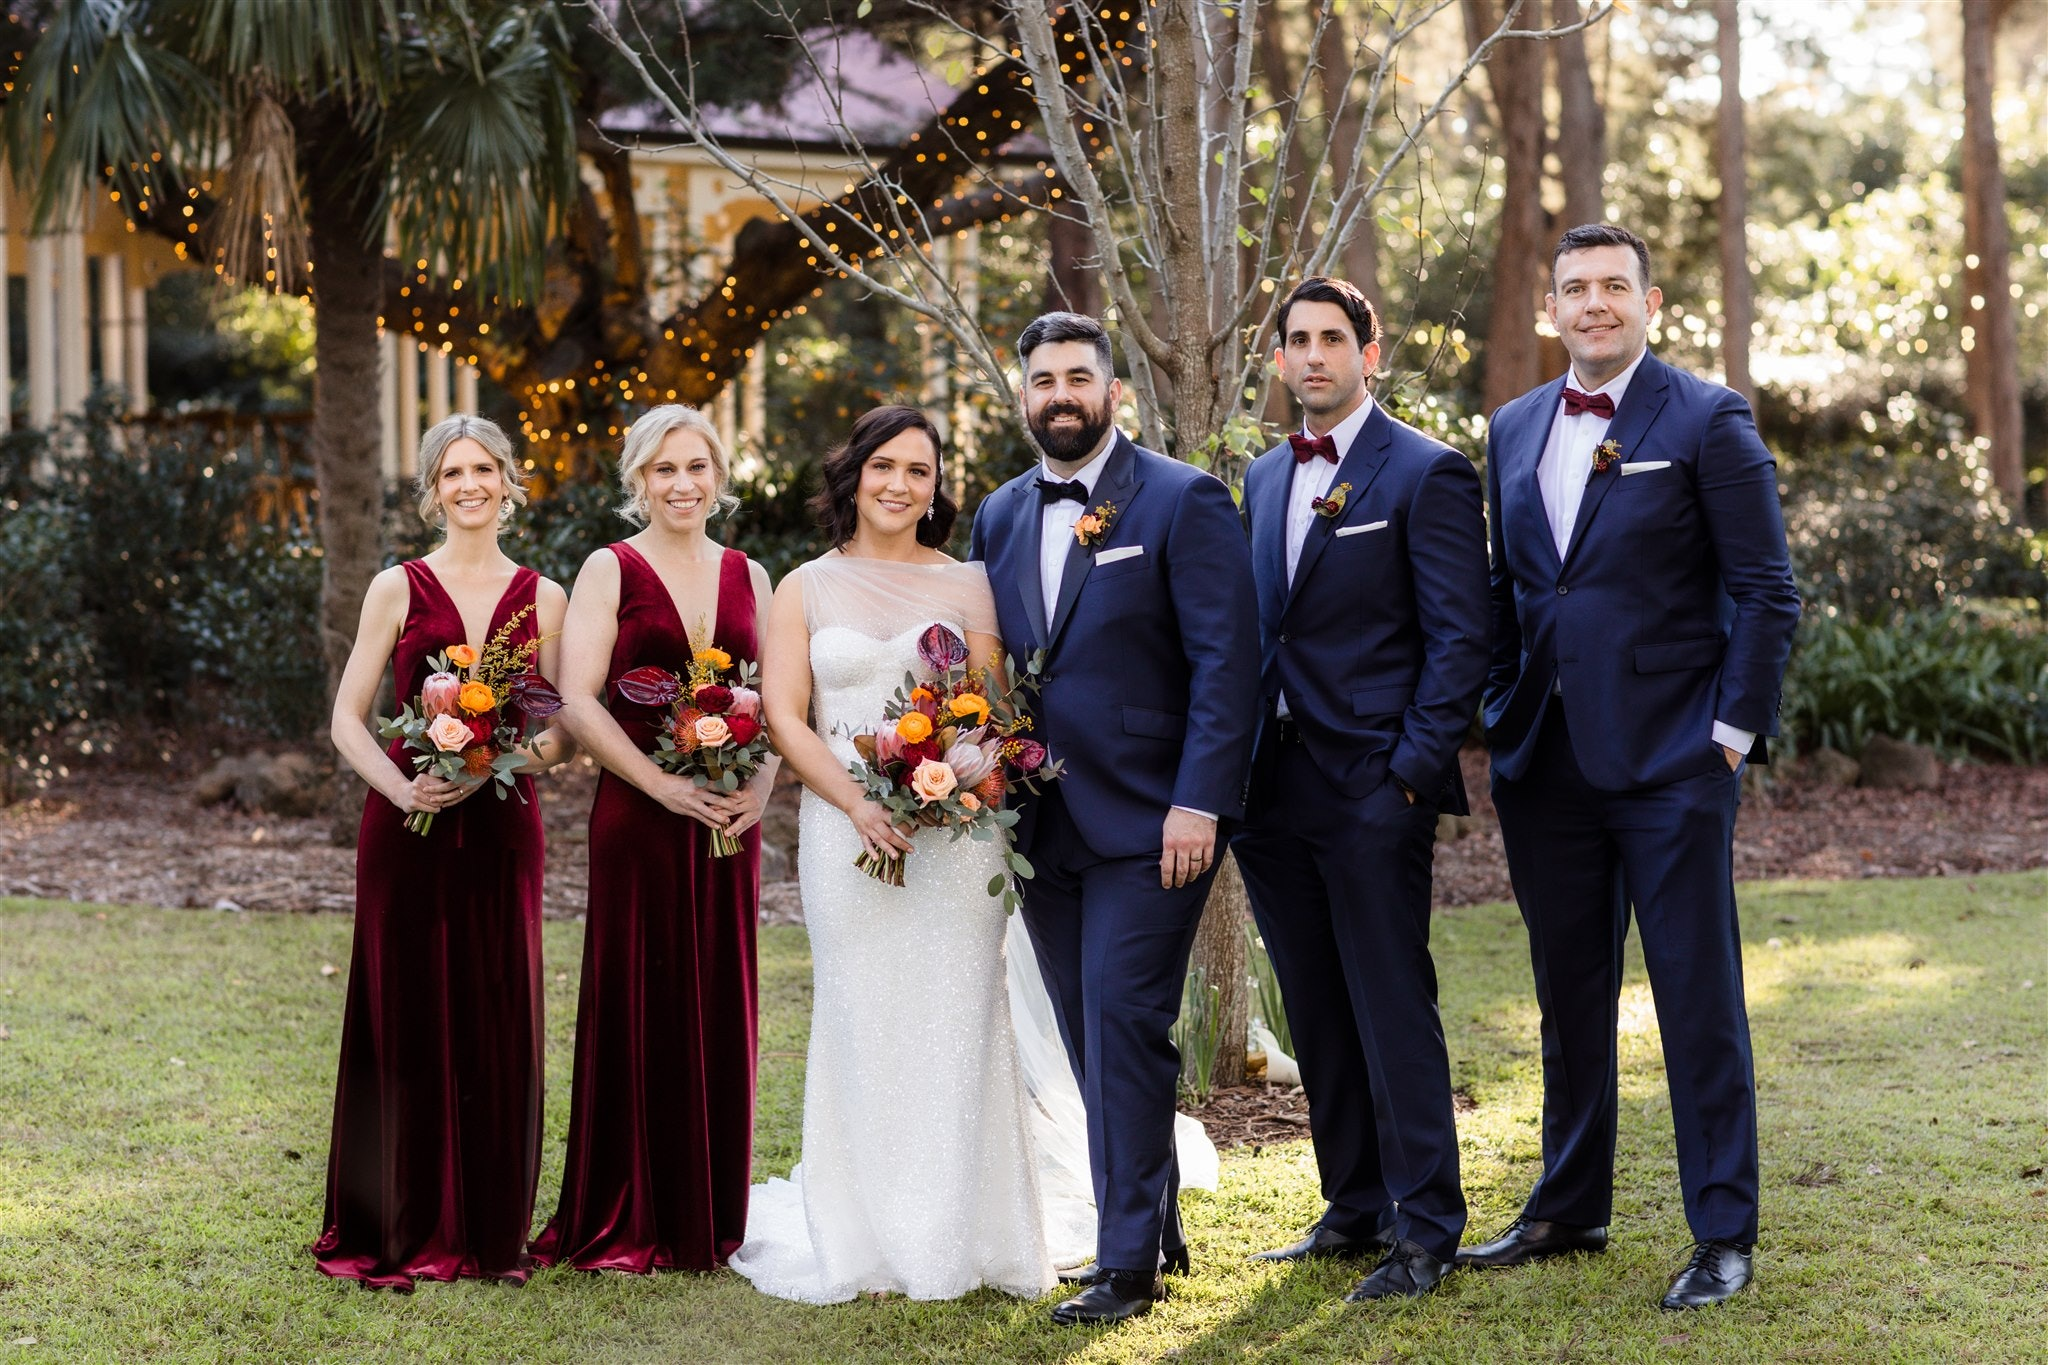 Bride and groom standing in gardens with wedding party